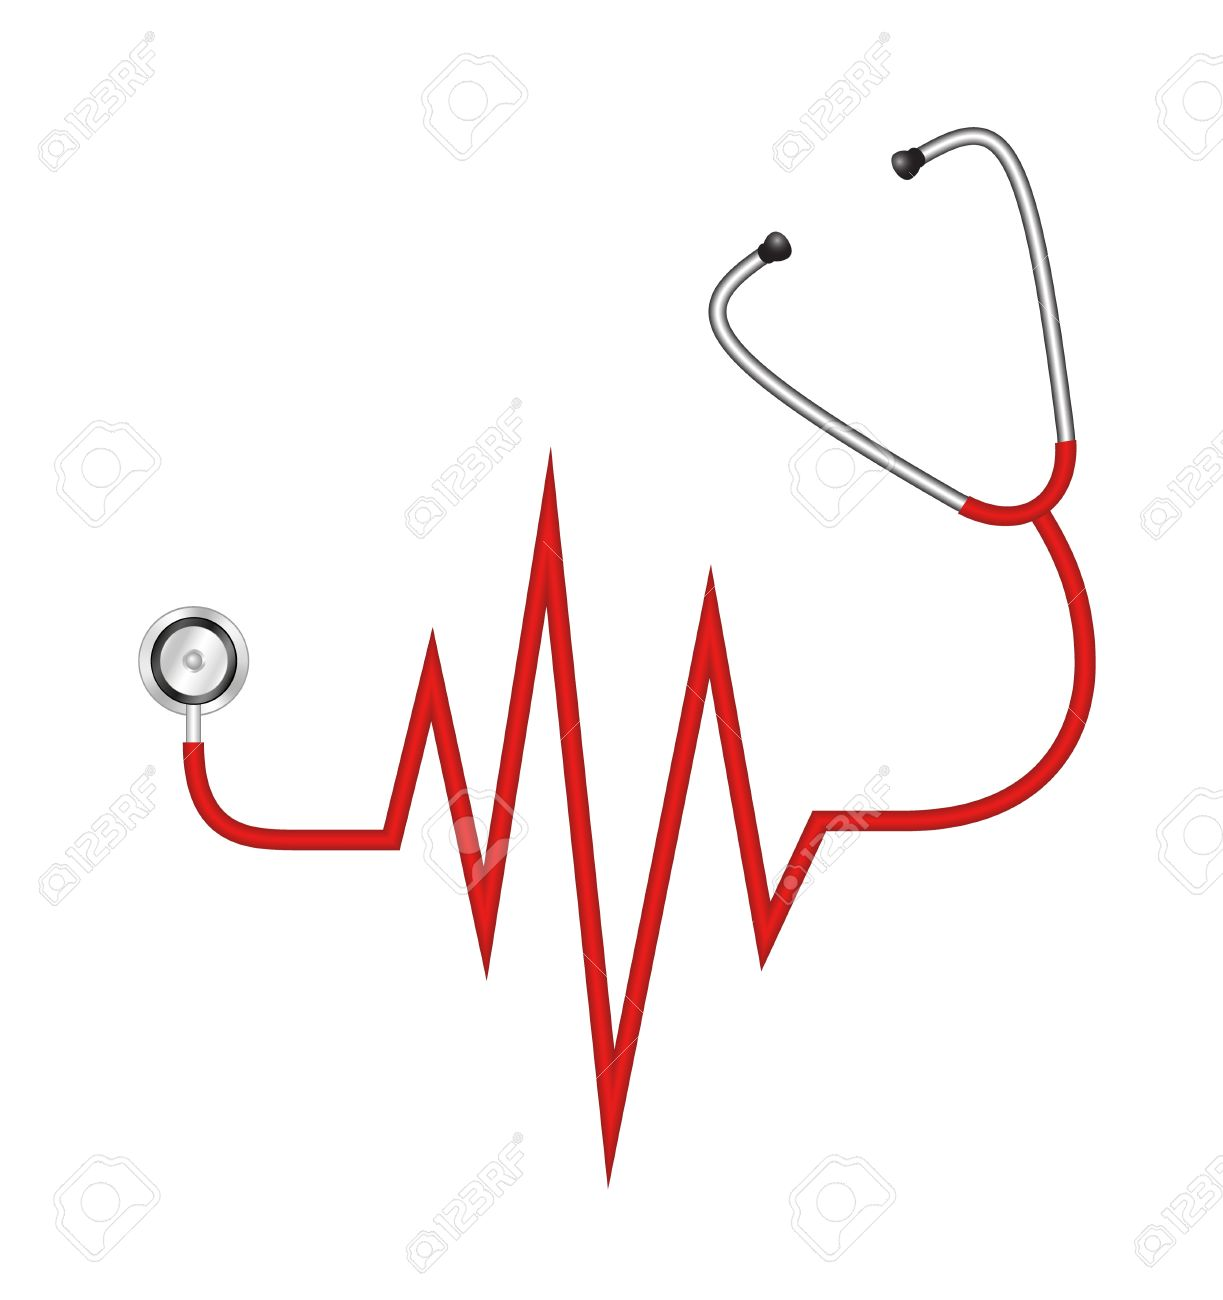 Heart-shaped clipart stethescope #2